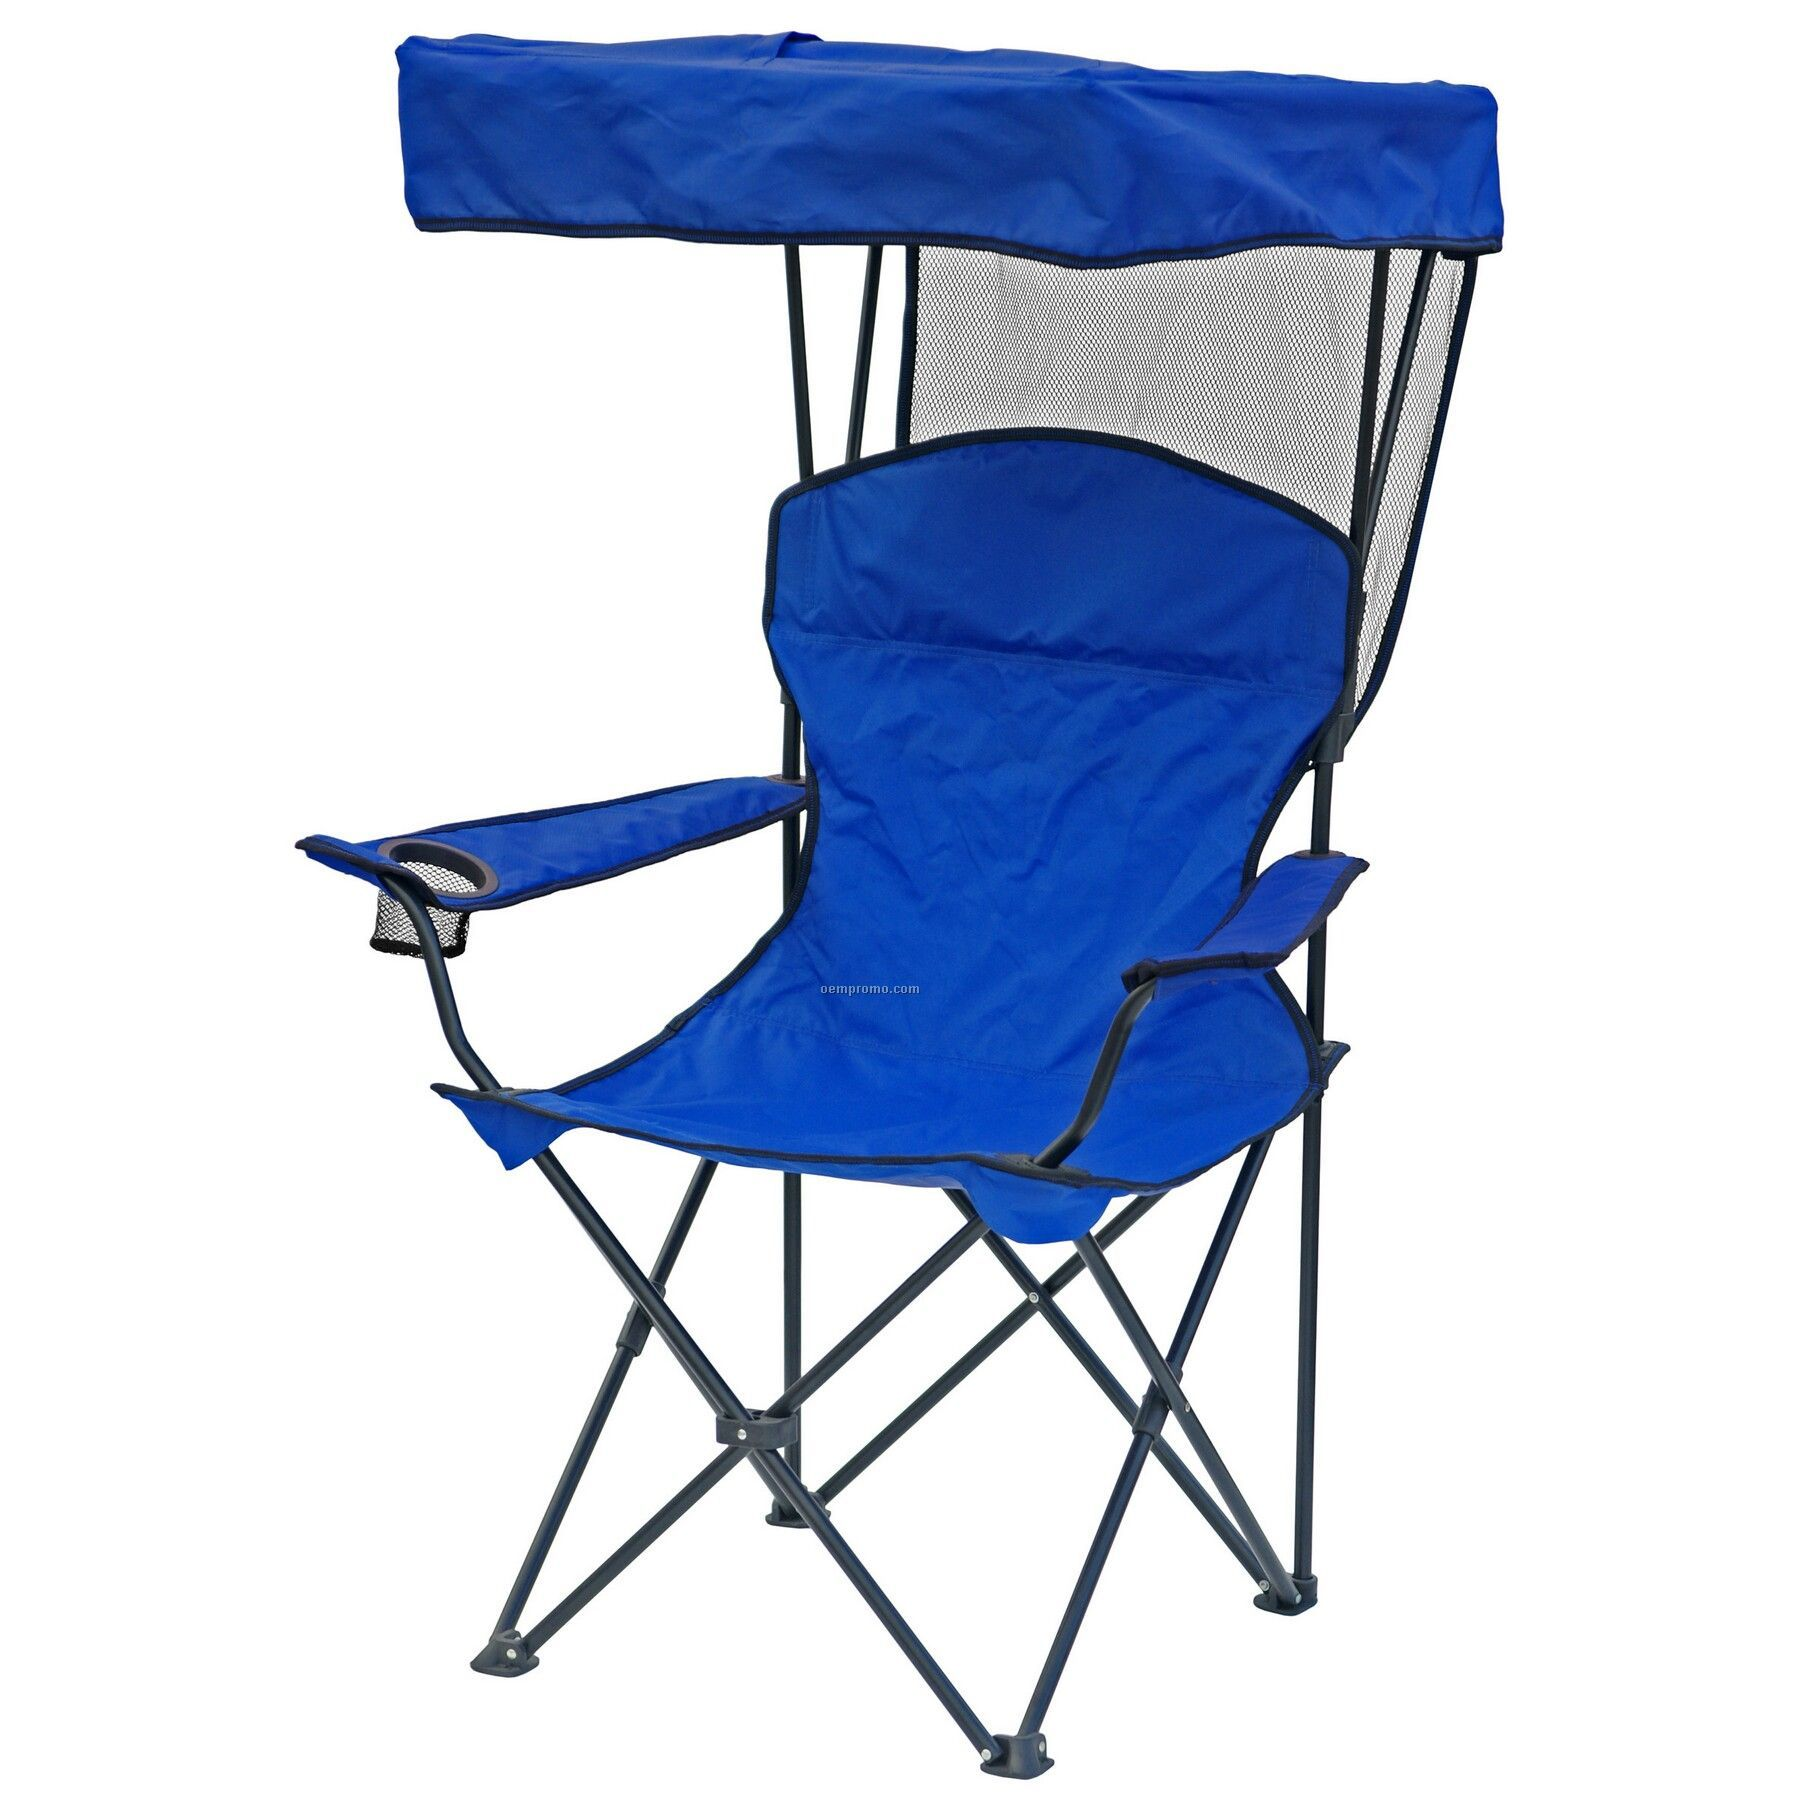 Direct Import Folding Chair W Canopy Arm Rests And Carry Bag